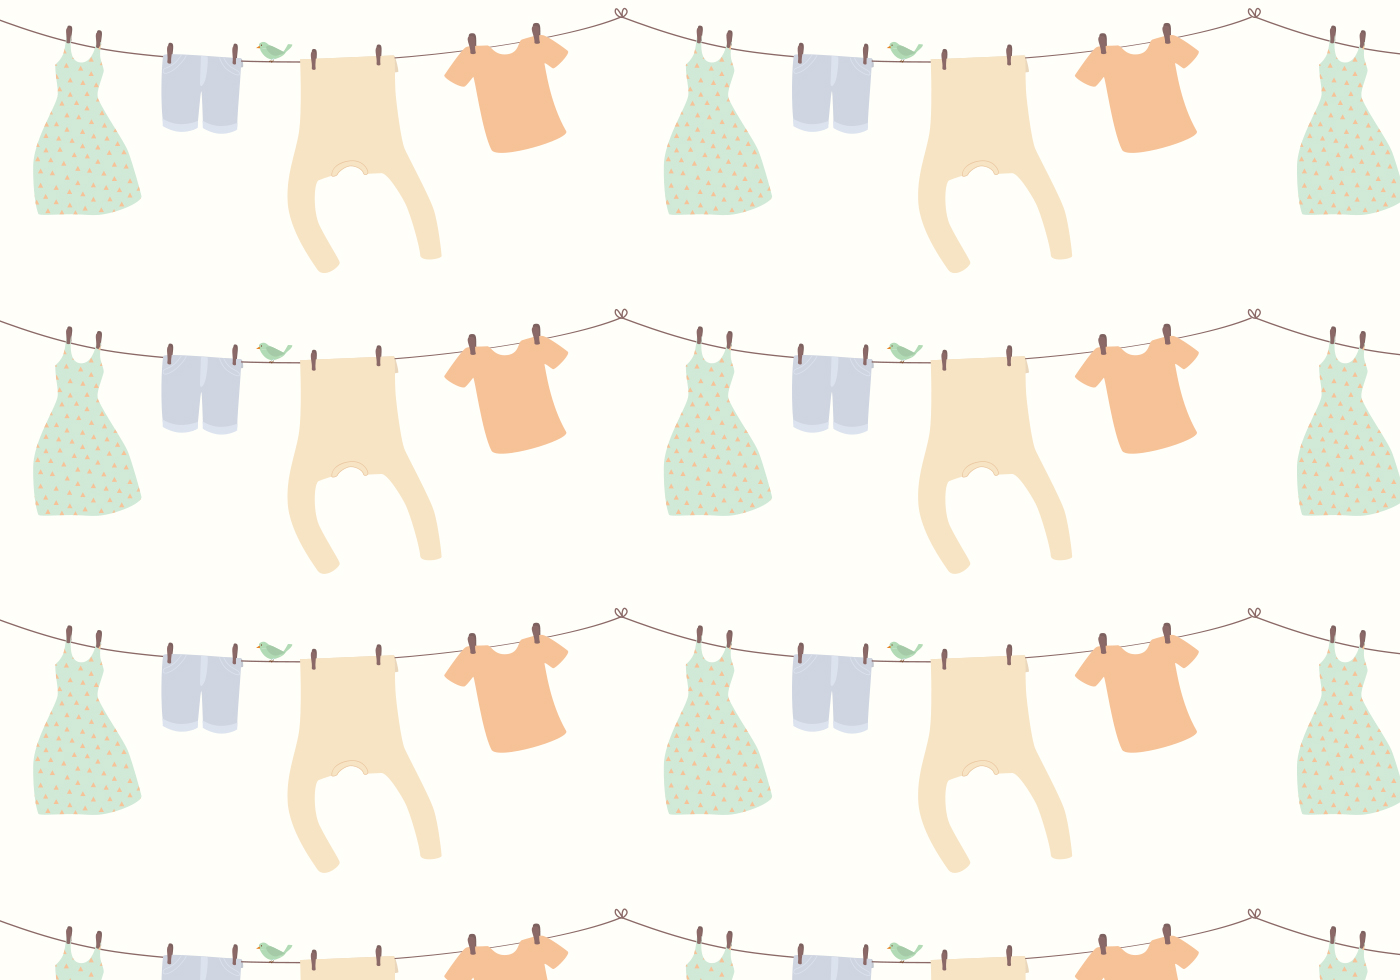 clothes pattern background download free vector art